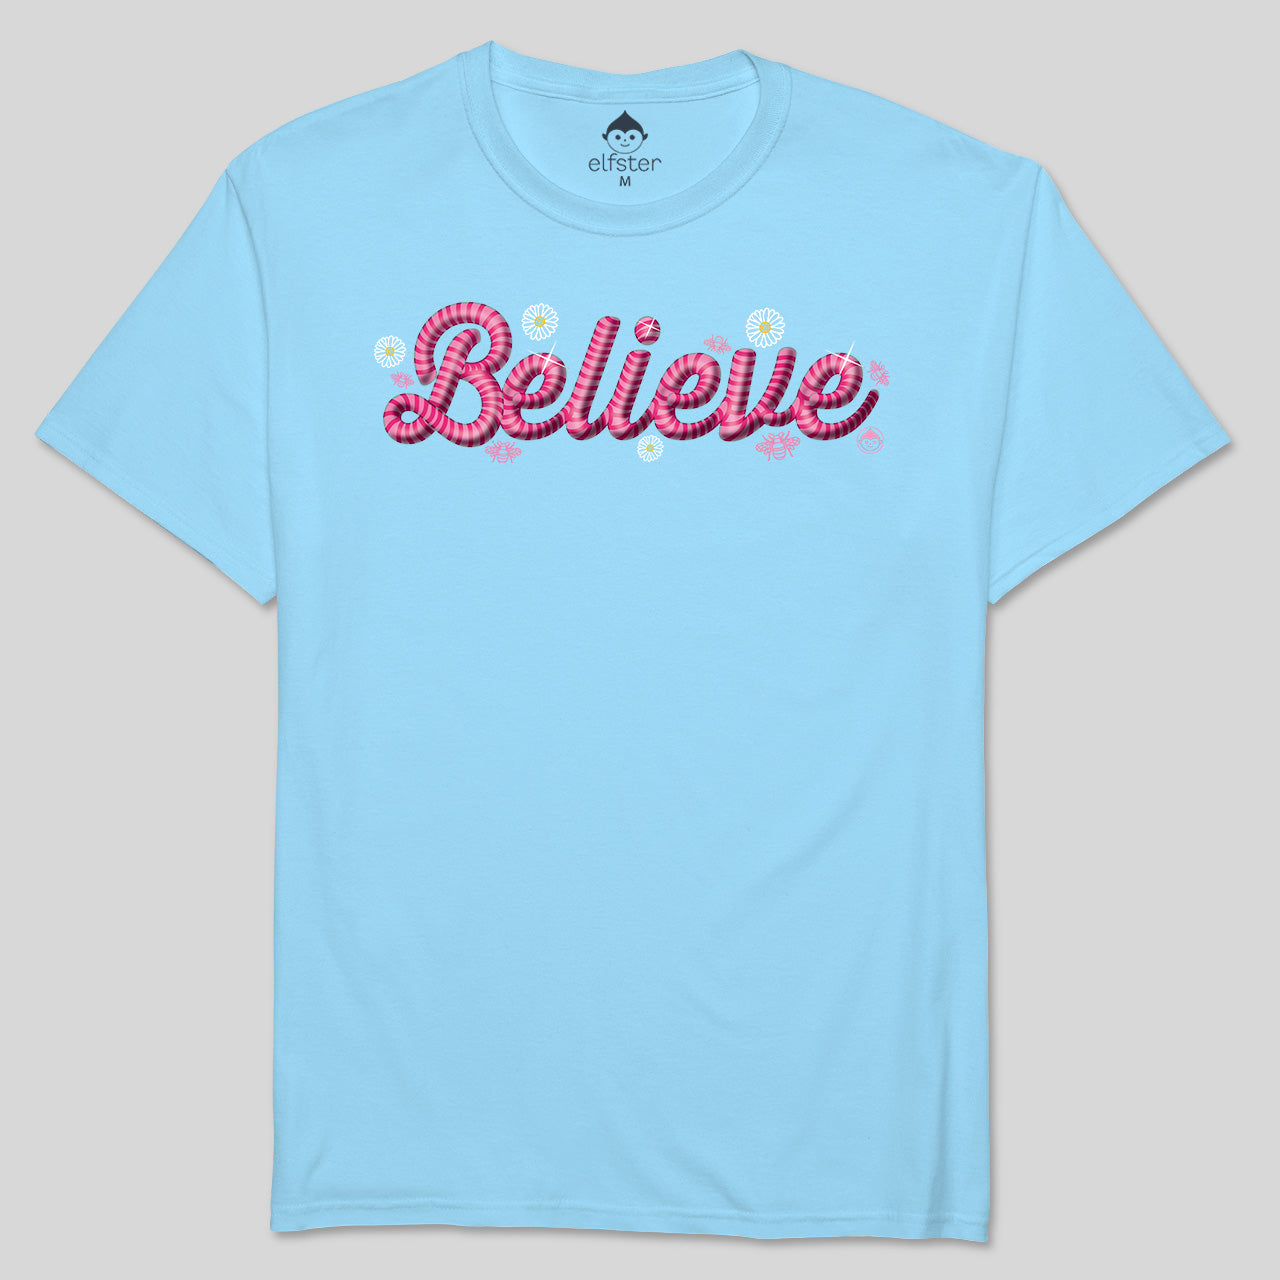 Believe - Summer Edition Light Blue Men's Short Sleeve Tee